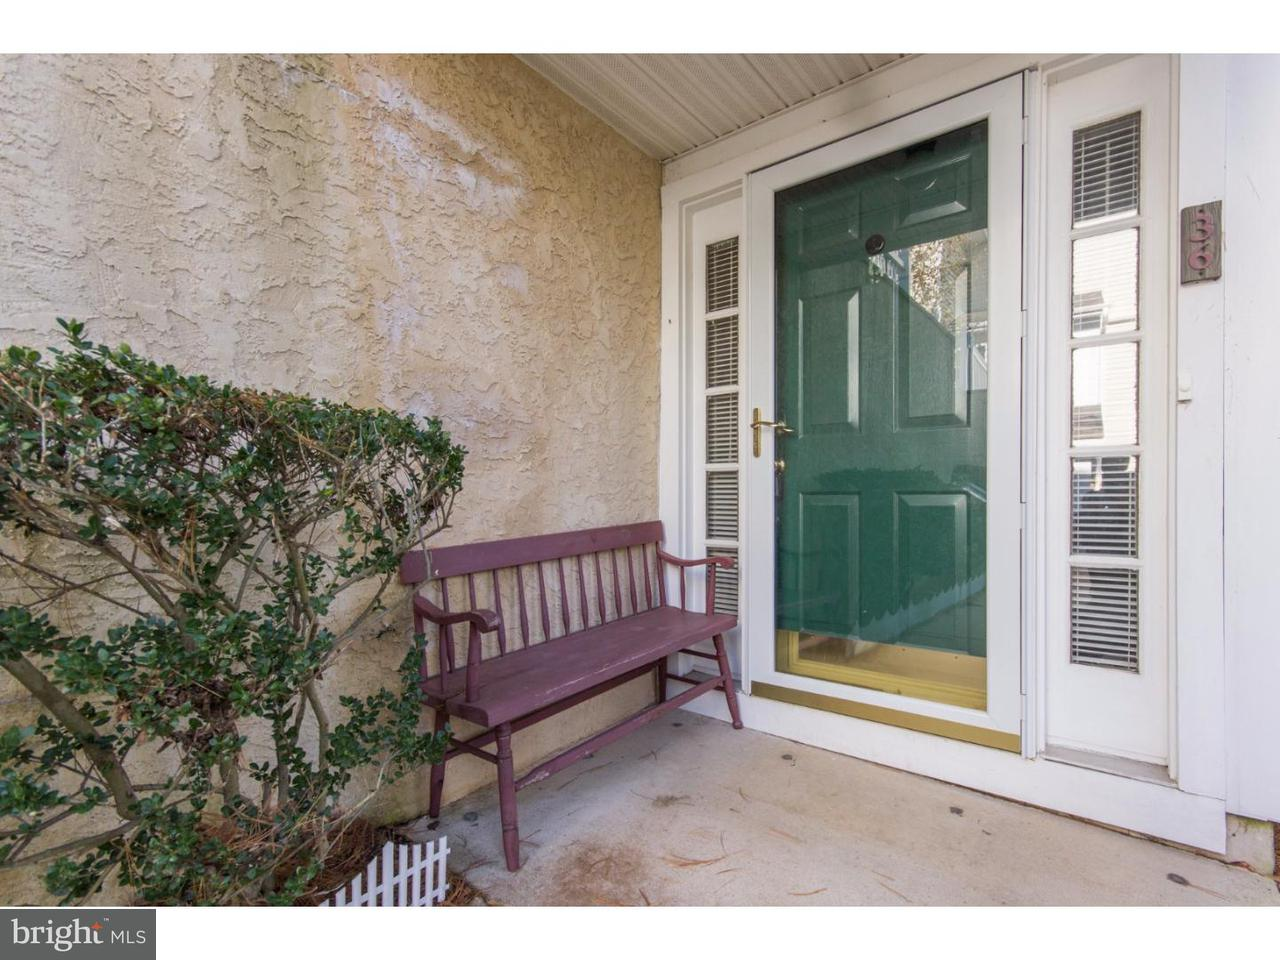 Condominium for Rent at 36 ASHLEY Court Chester Heights, Pennsylvania 19342 United States